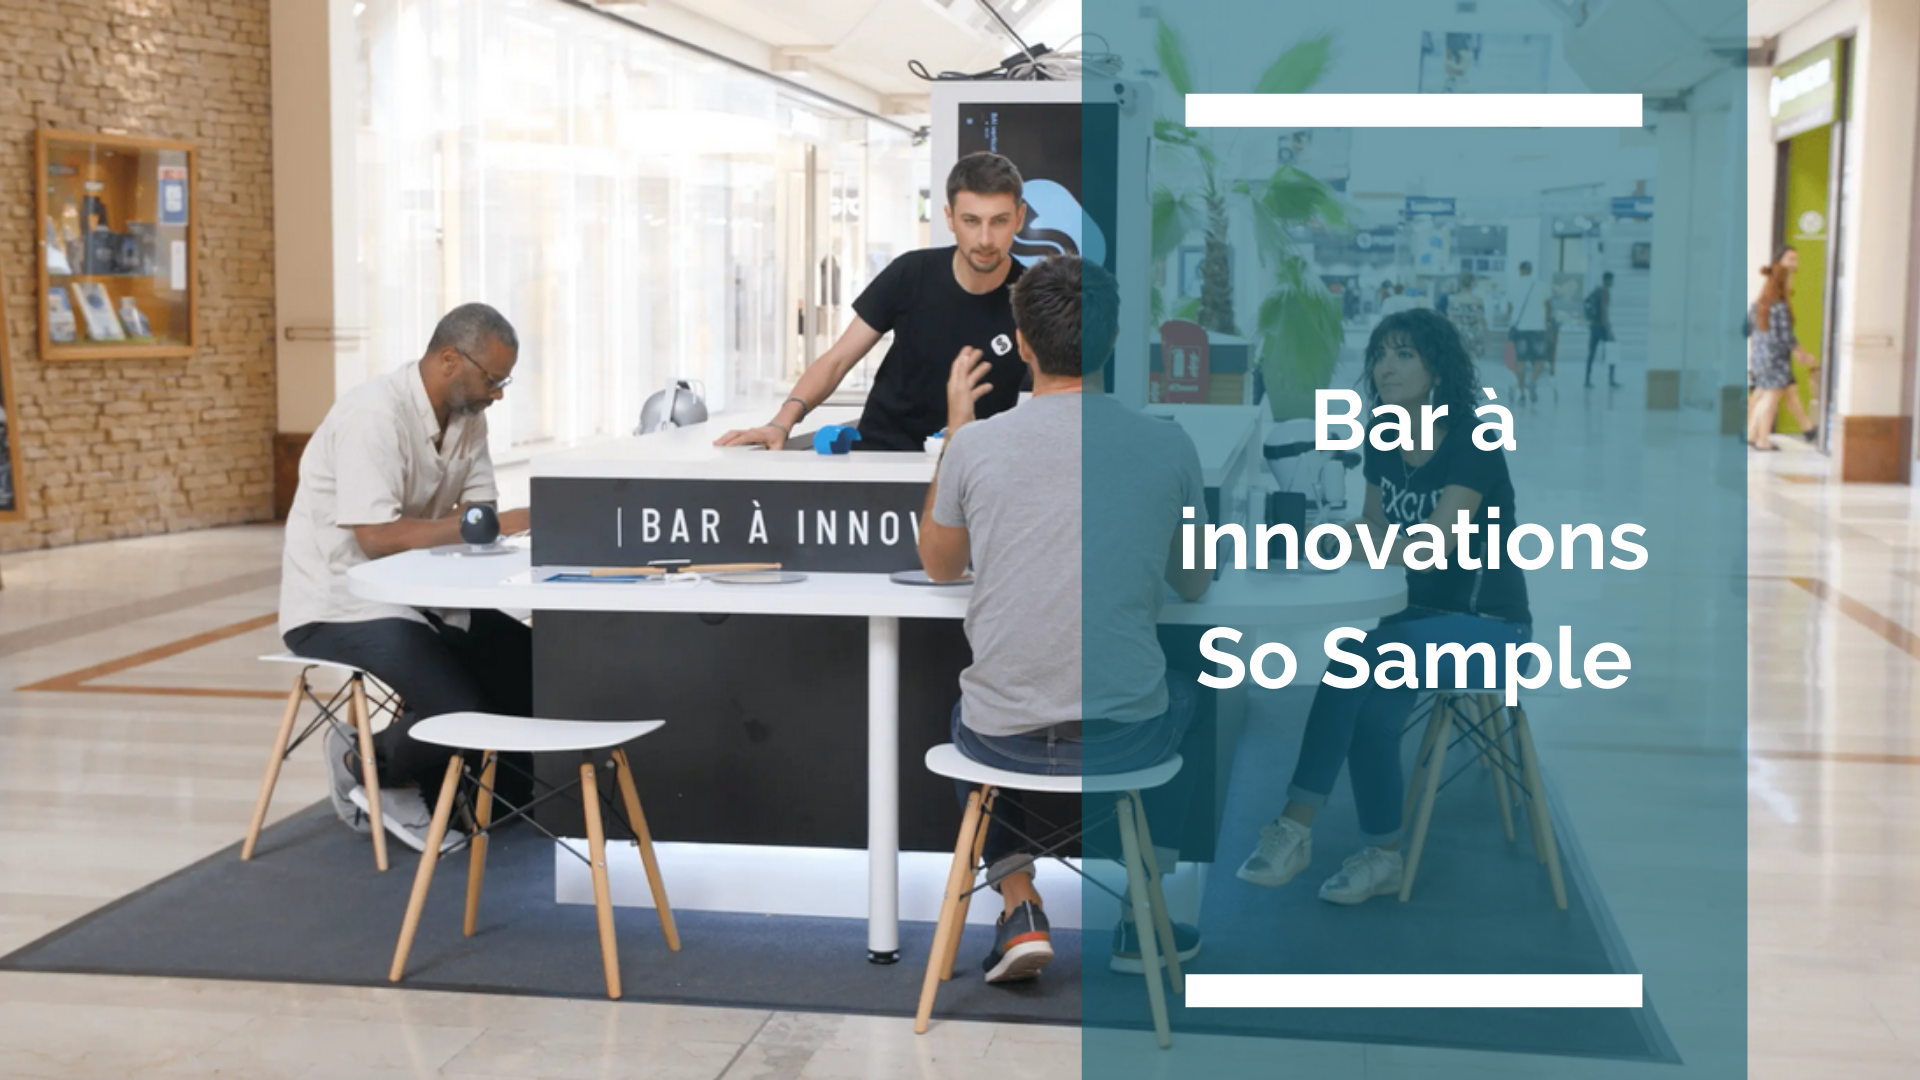 Visuel de l'article : bar à innovations So Sample